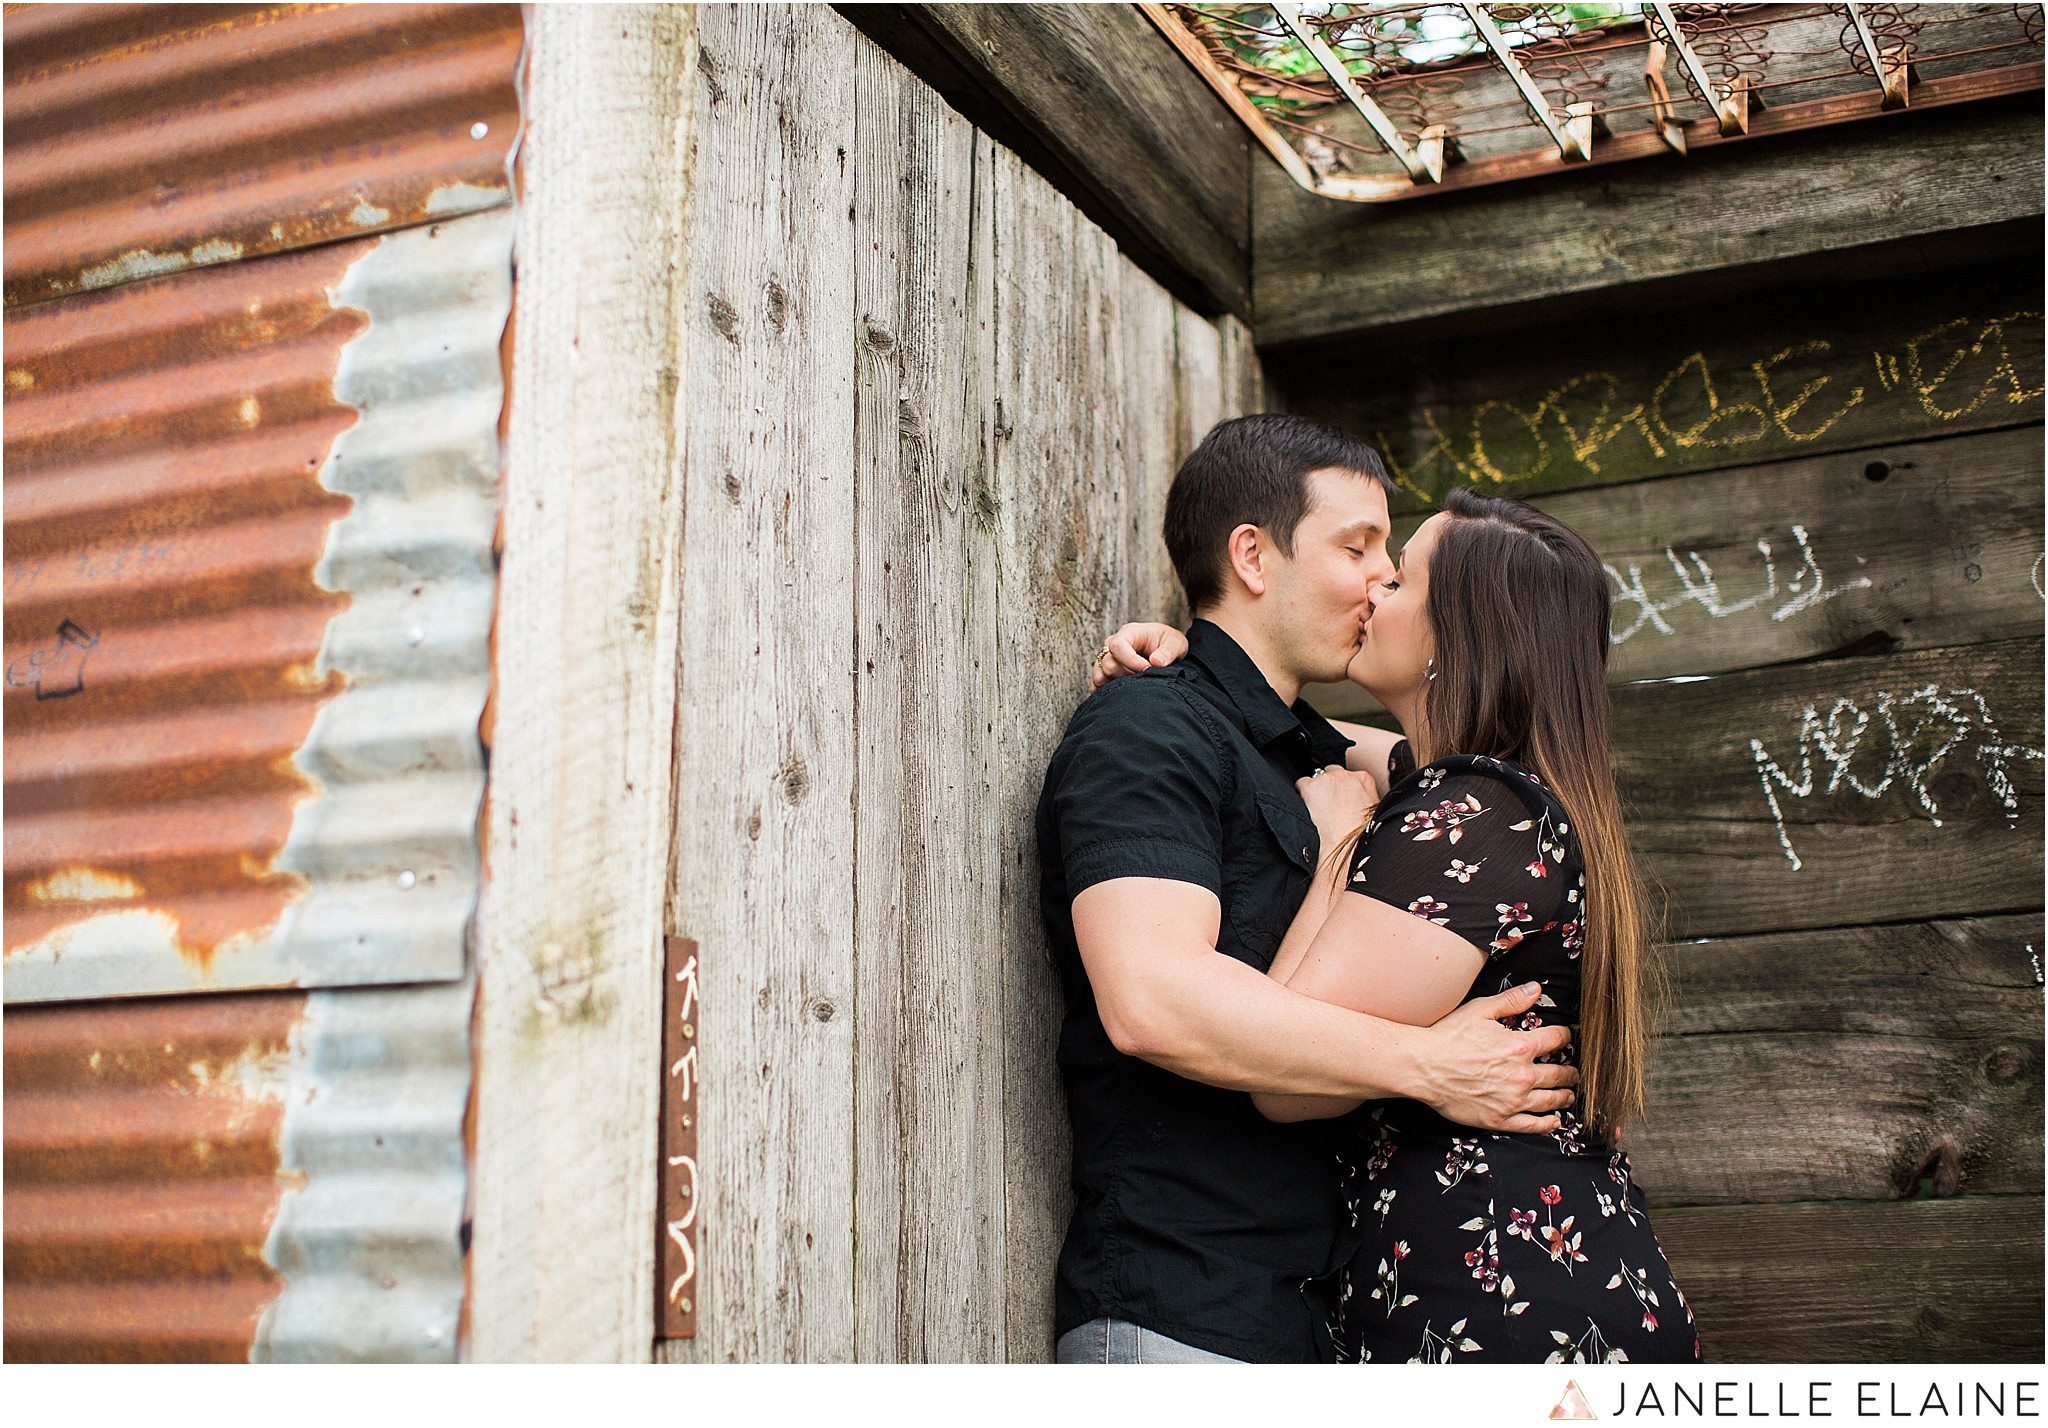 karen ethan-georgetown engagement photos-seattle-janelle elaine photography-47.jpg